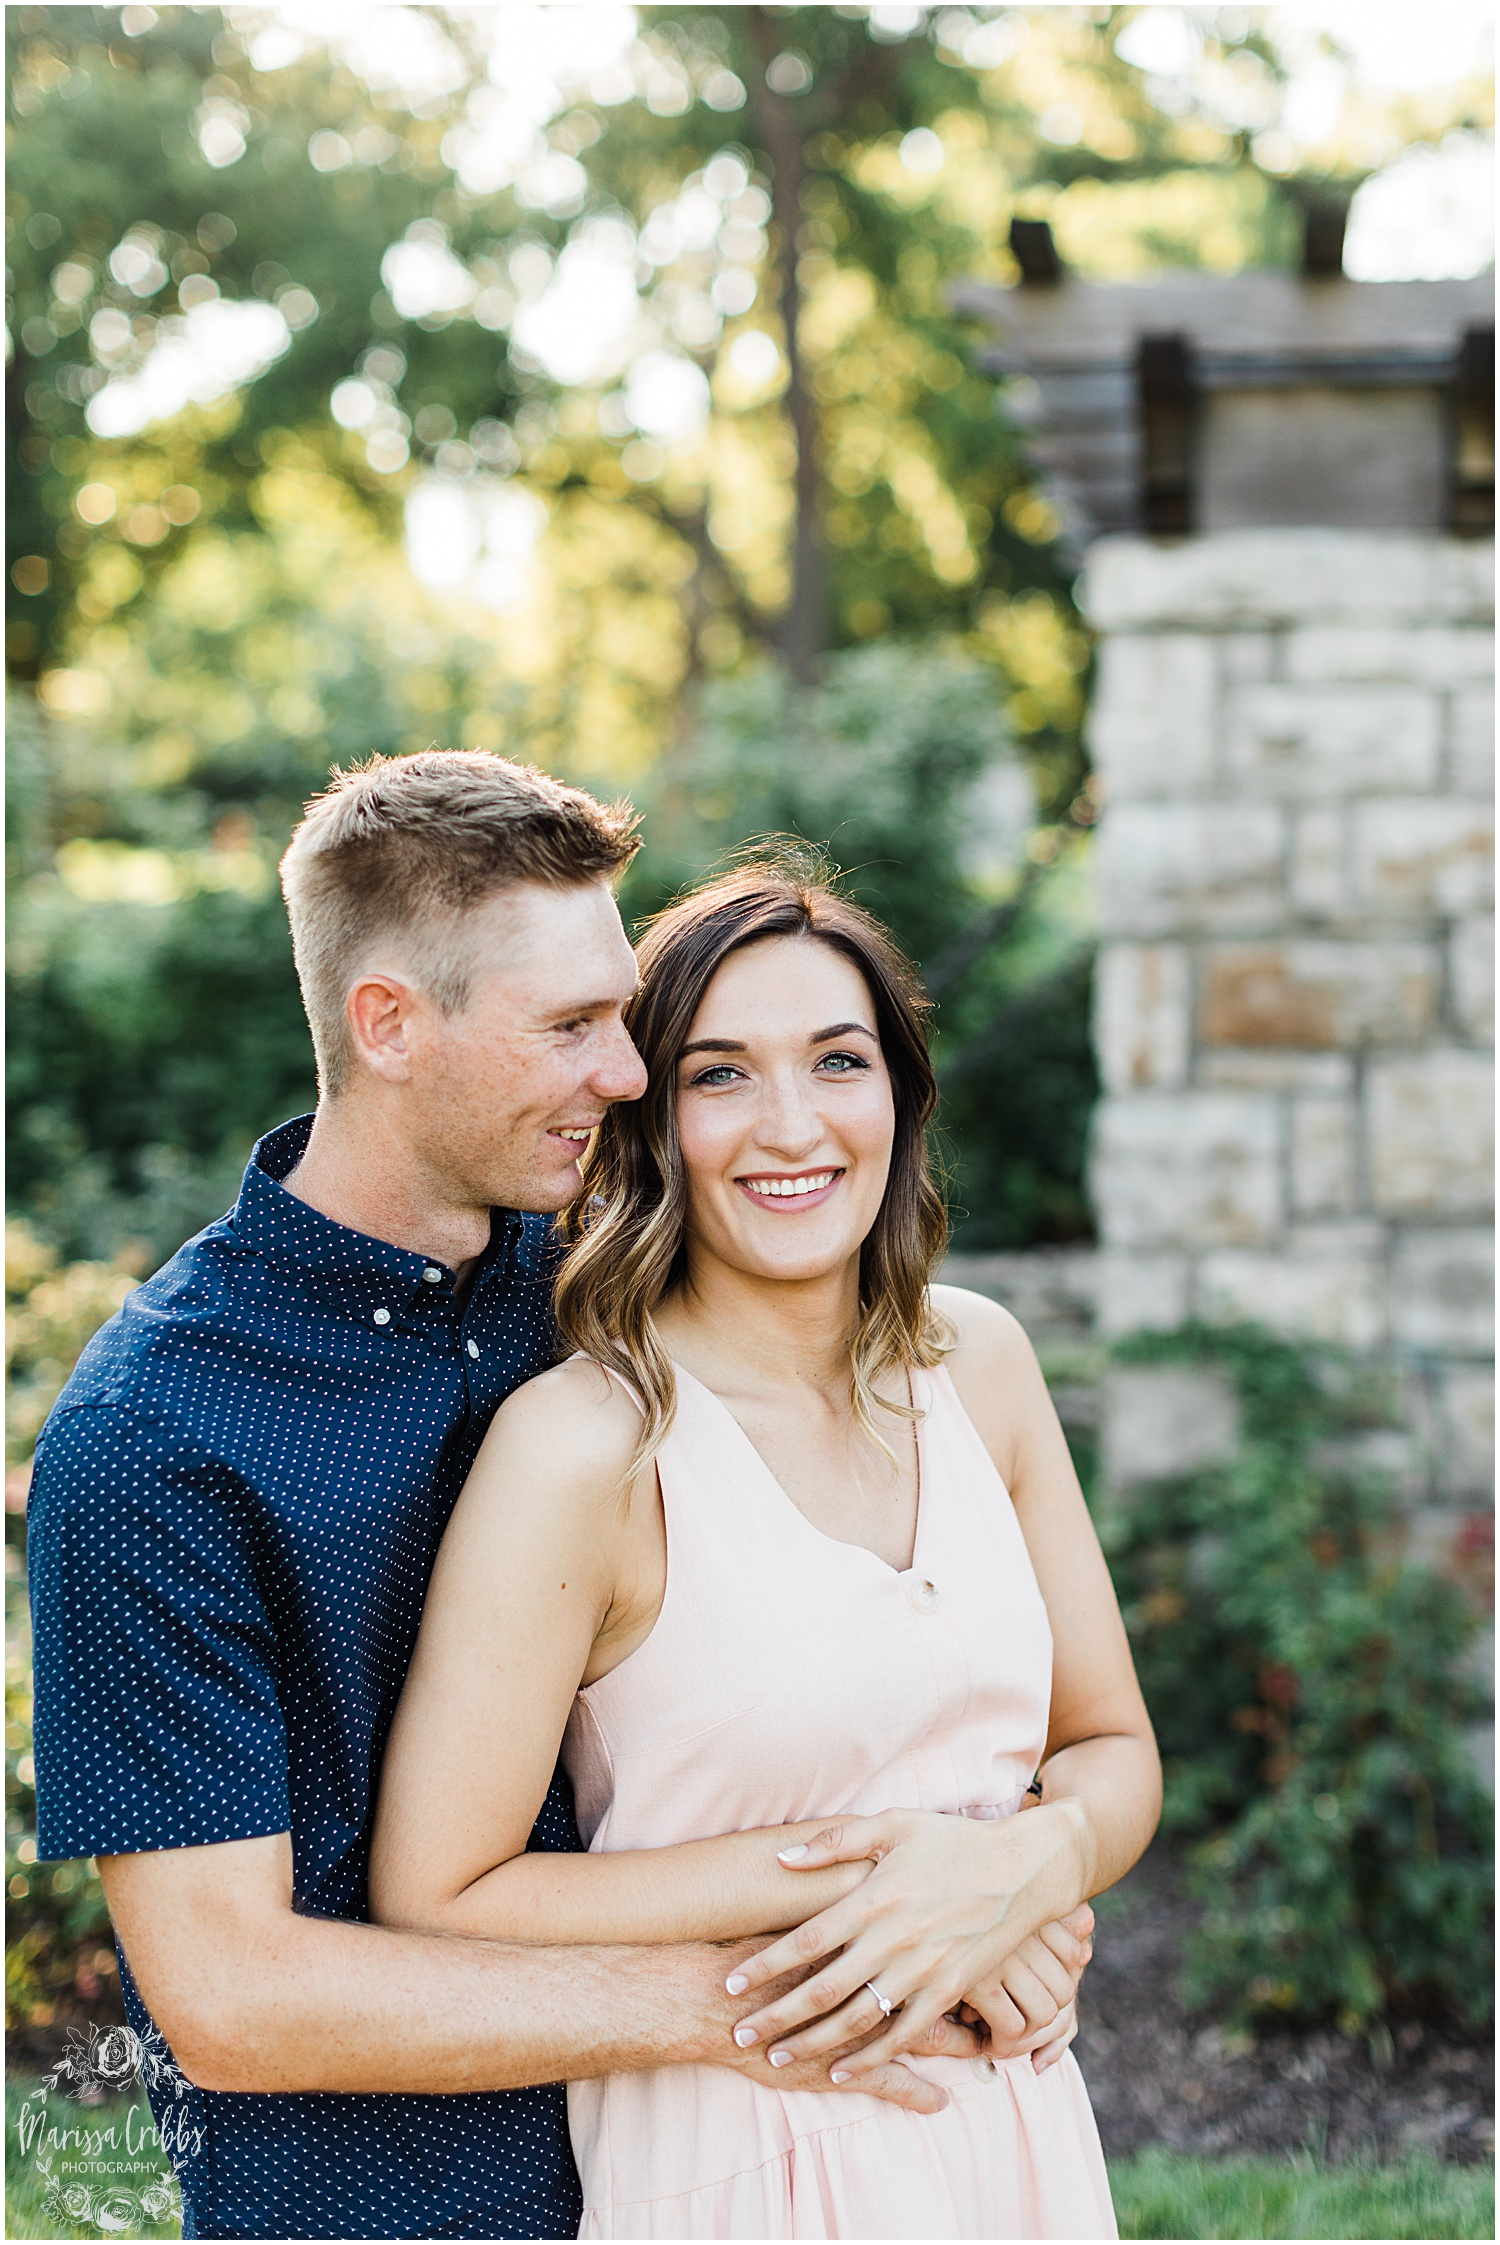 KELSEY & MICHAEL ENGAGEMENT BLOG | MARISSA CRIBBS PHOTOGRAPHY_8441.jpg